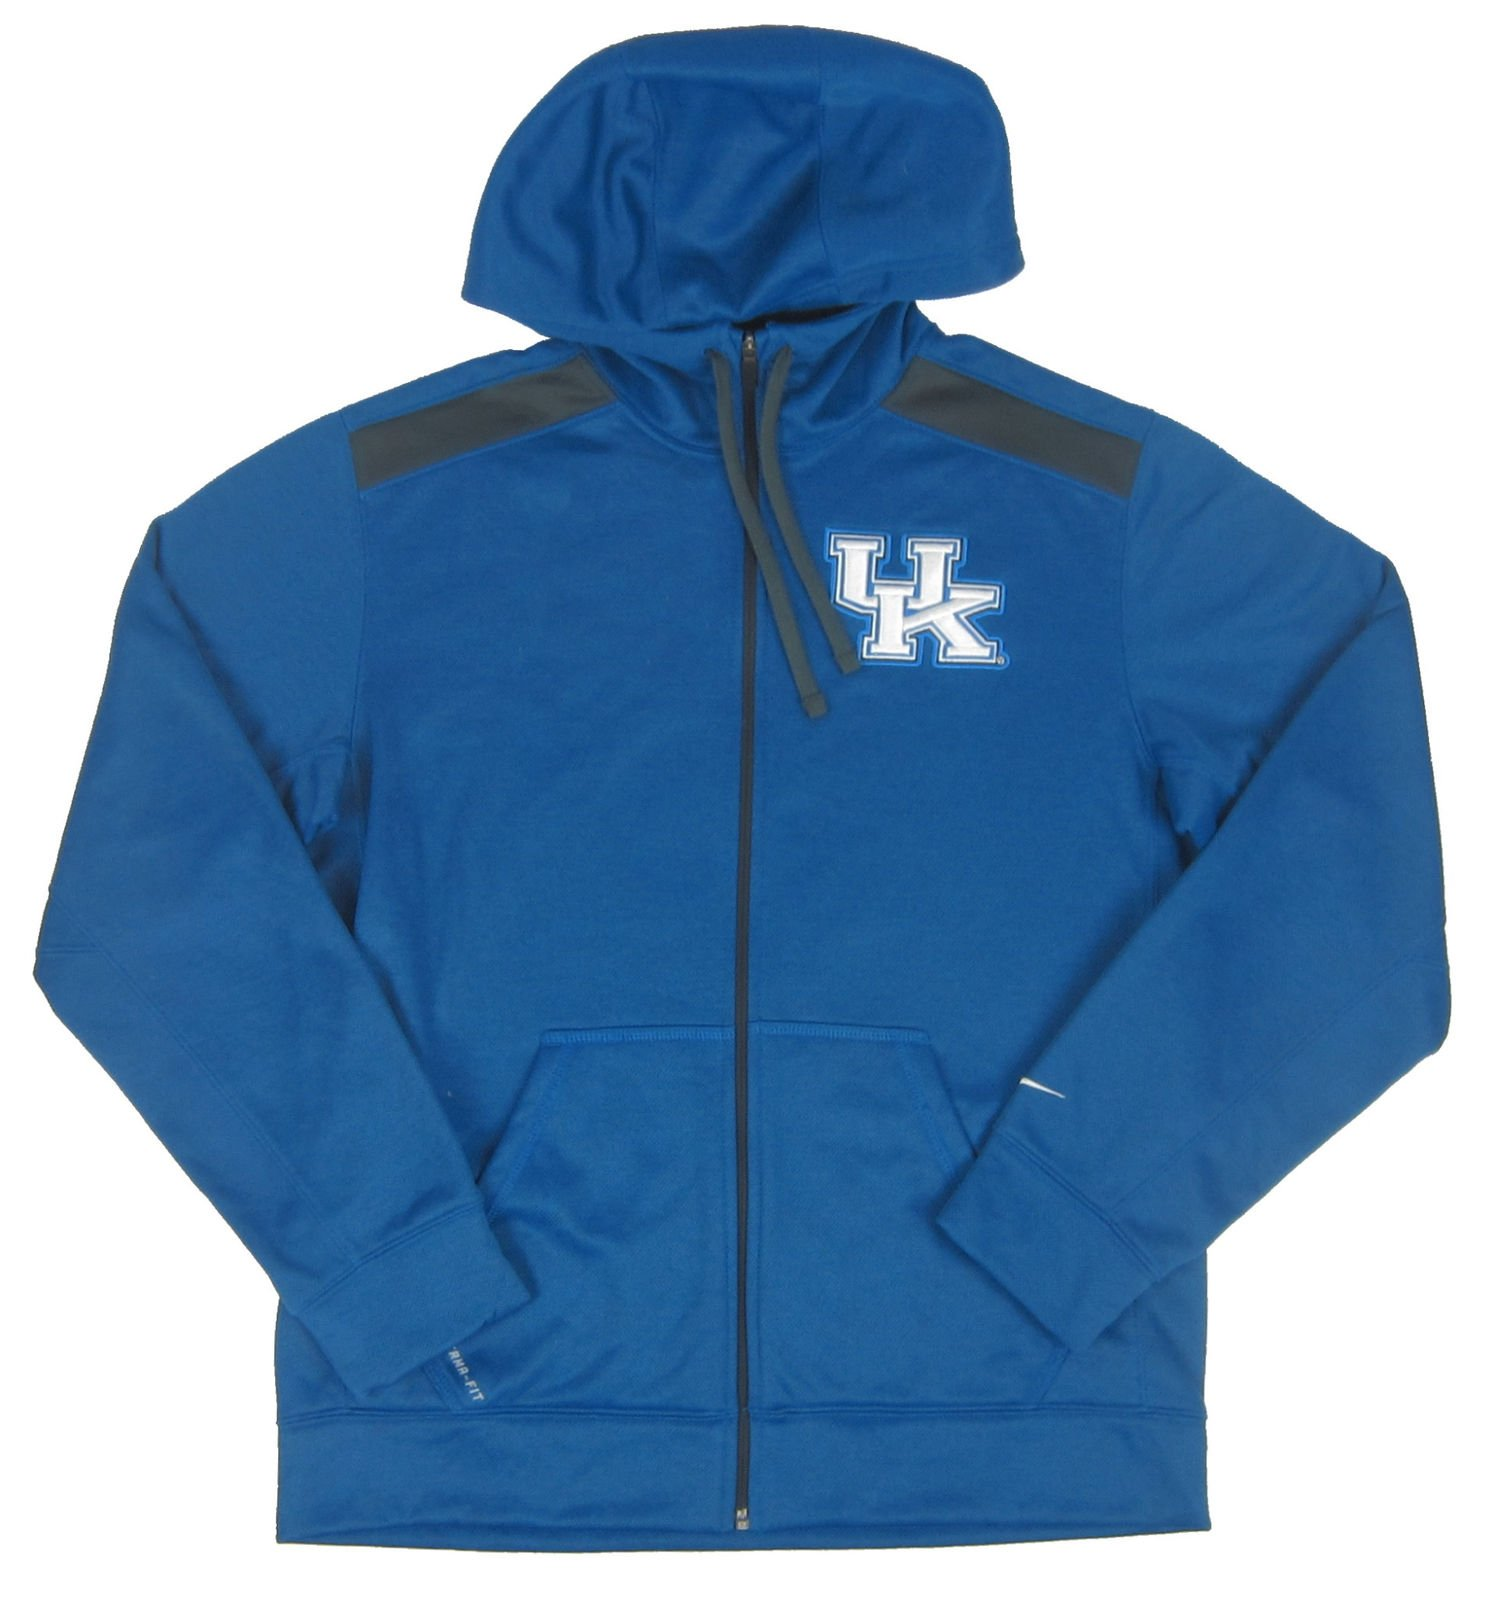 Details about Nike NWT University of Kentucky Wildcats Royal Blue Zip Hoodie Size: Medium